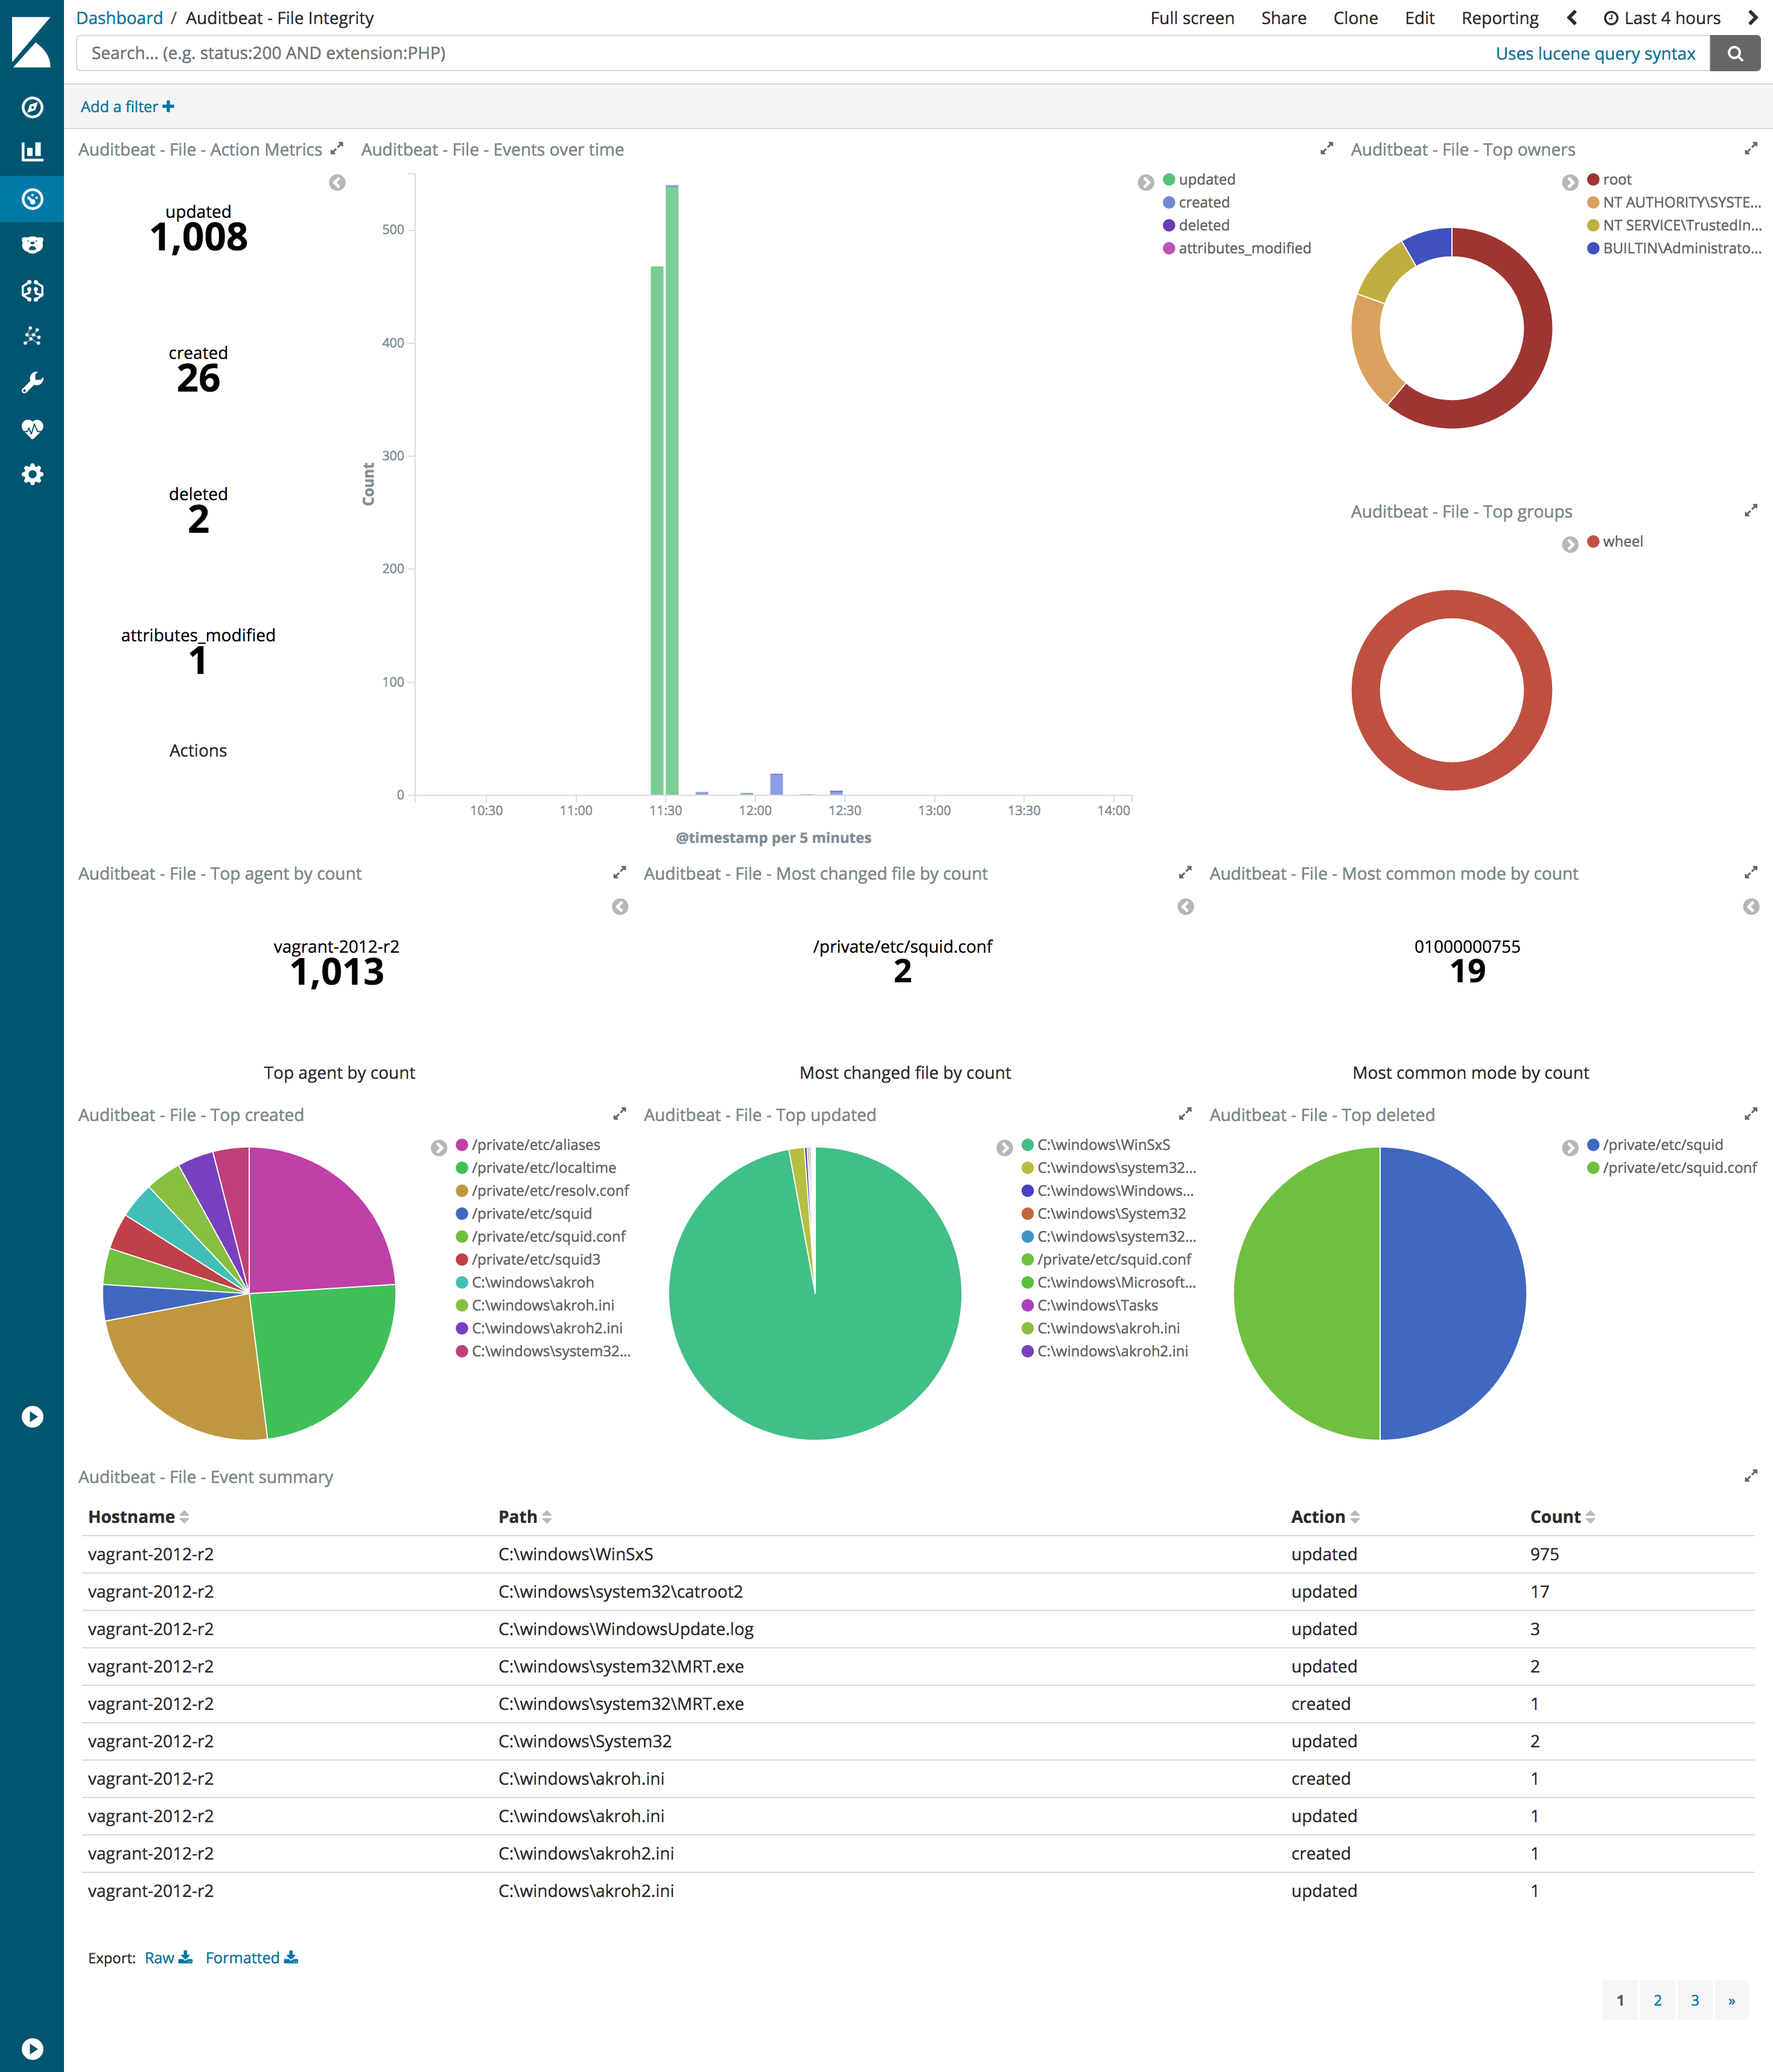 auditbeat-file-integrity-dashboard.png